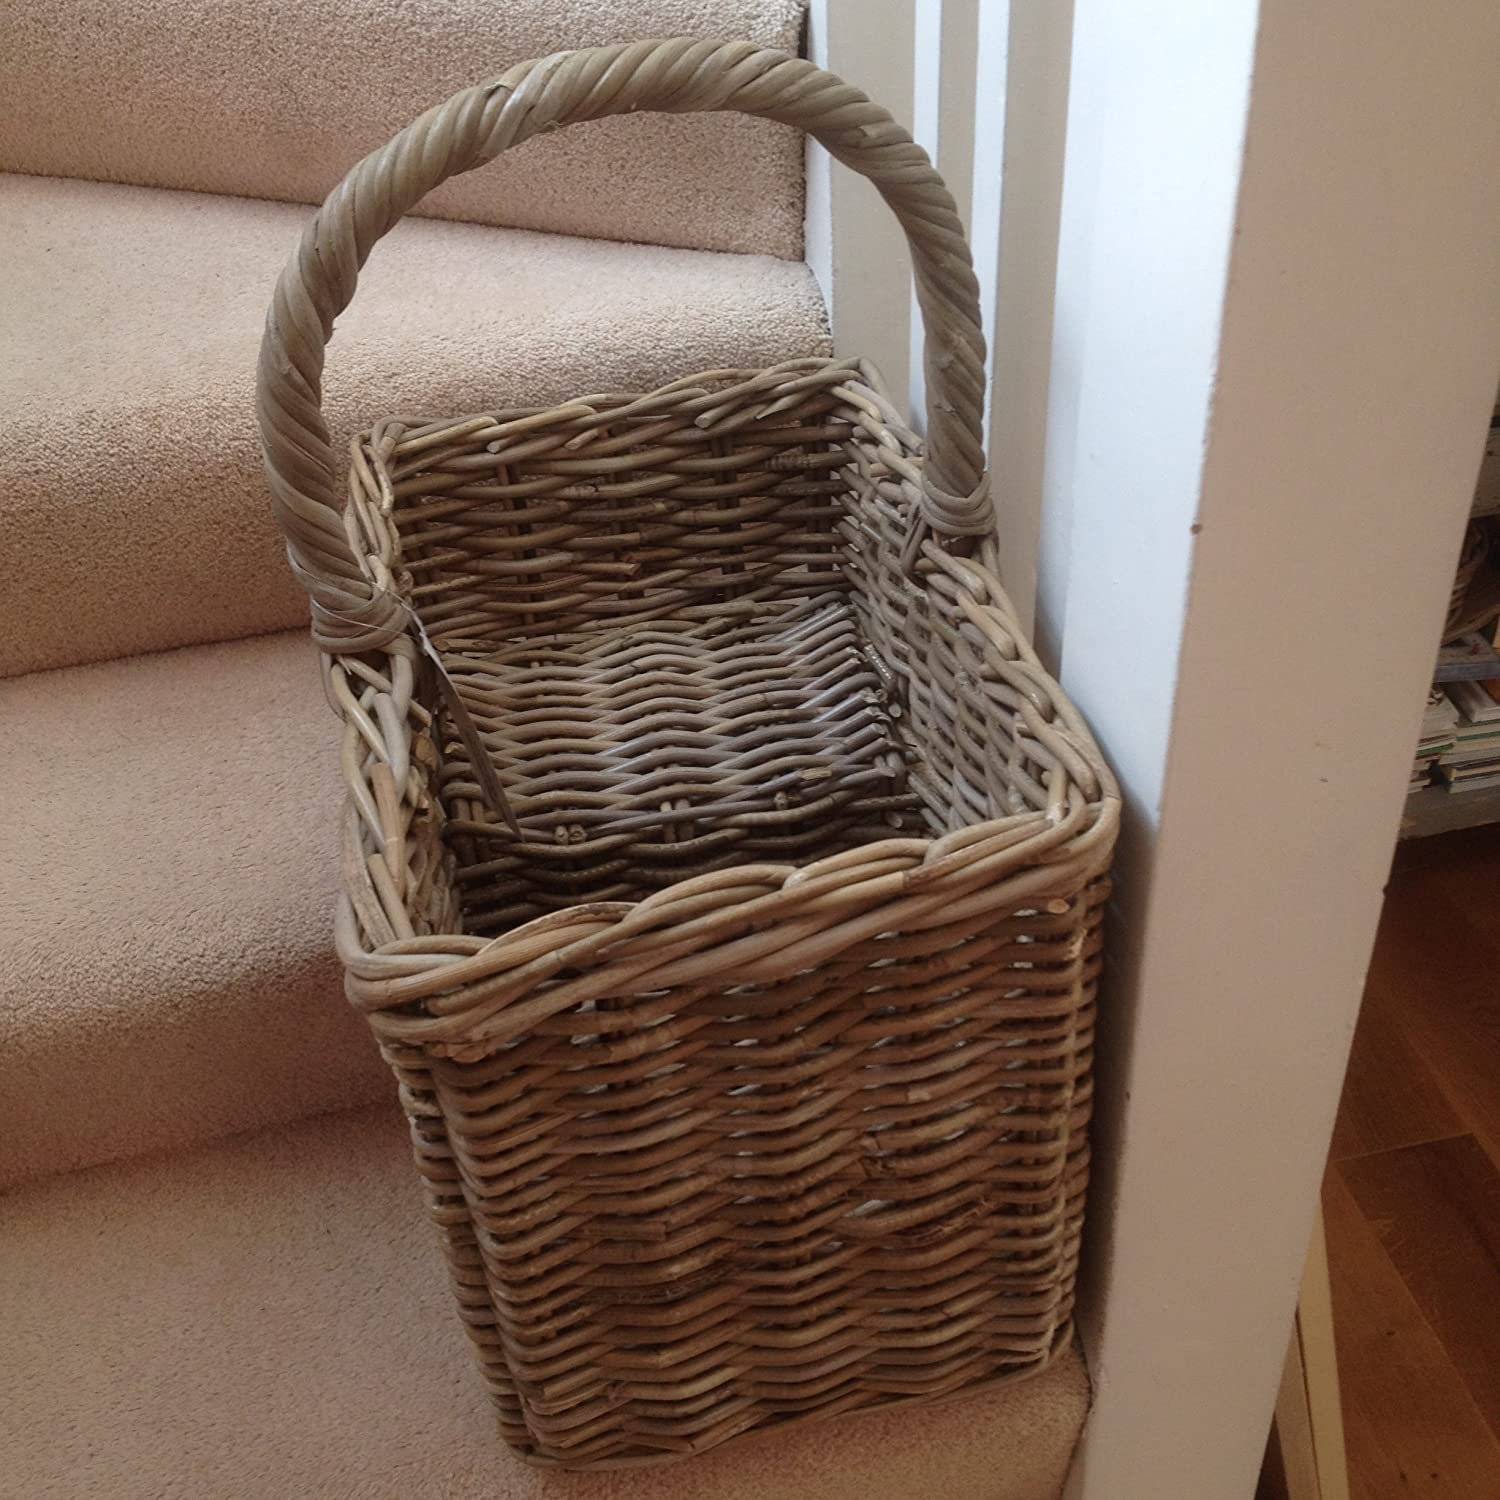 Rattan Basket   Grey Rattan Stair Basket   D42cm X 28cm X H35.:  Amazon.co.uk: Kitchen U0026 Home